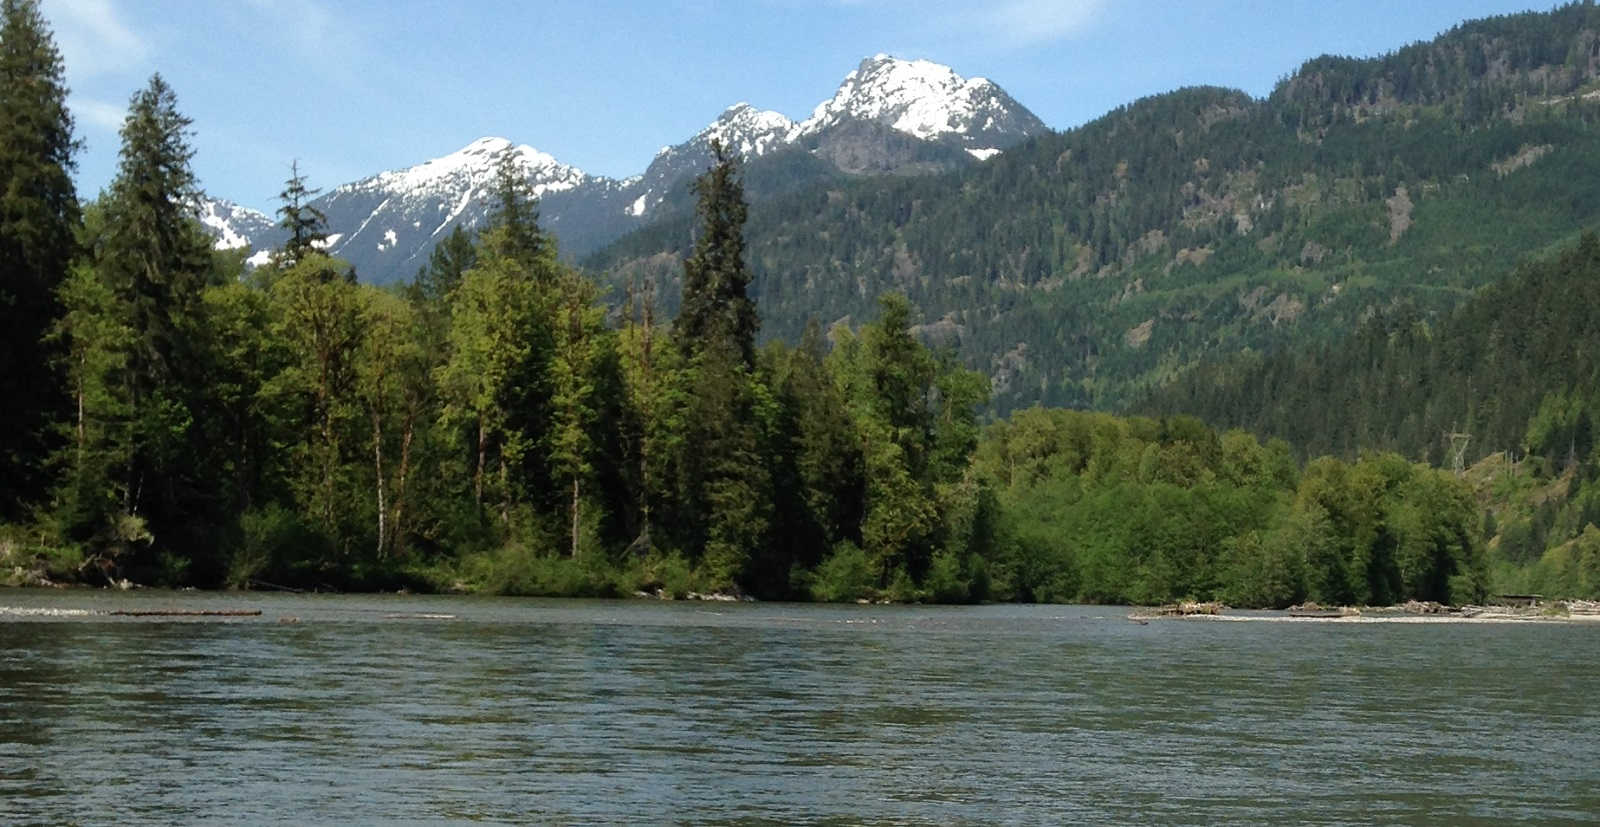 vancouver fishing, vancouver trout fishing, vancouver fly fishing, bull trout fishing, fly fishing for bull trout, squamish river bc